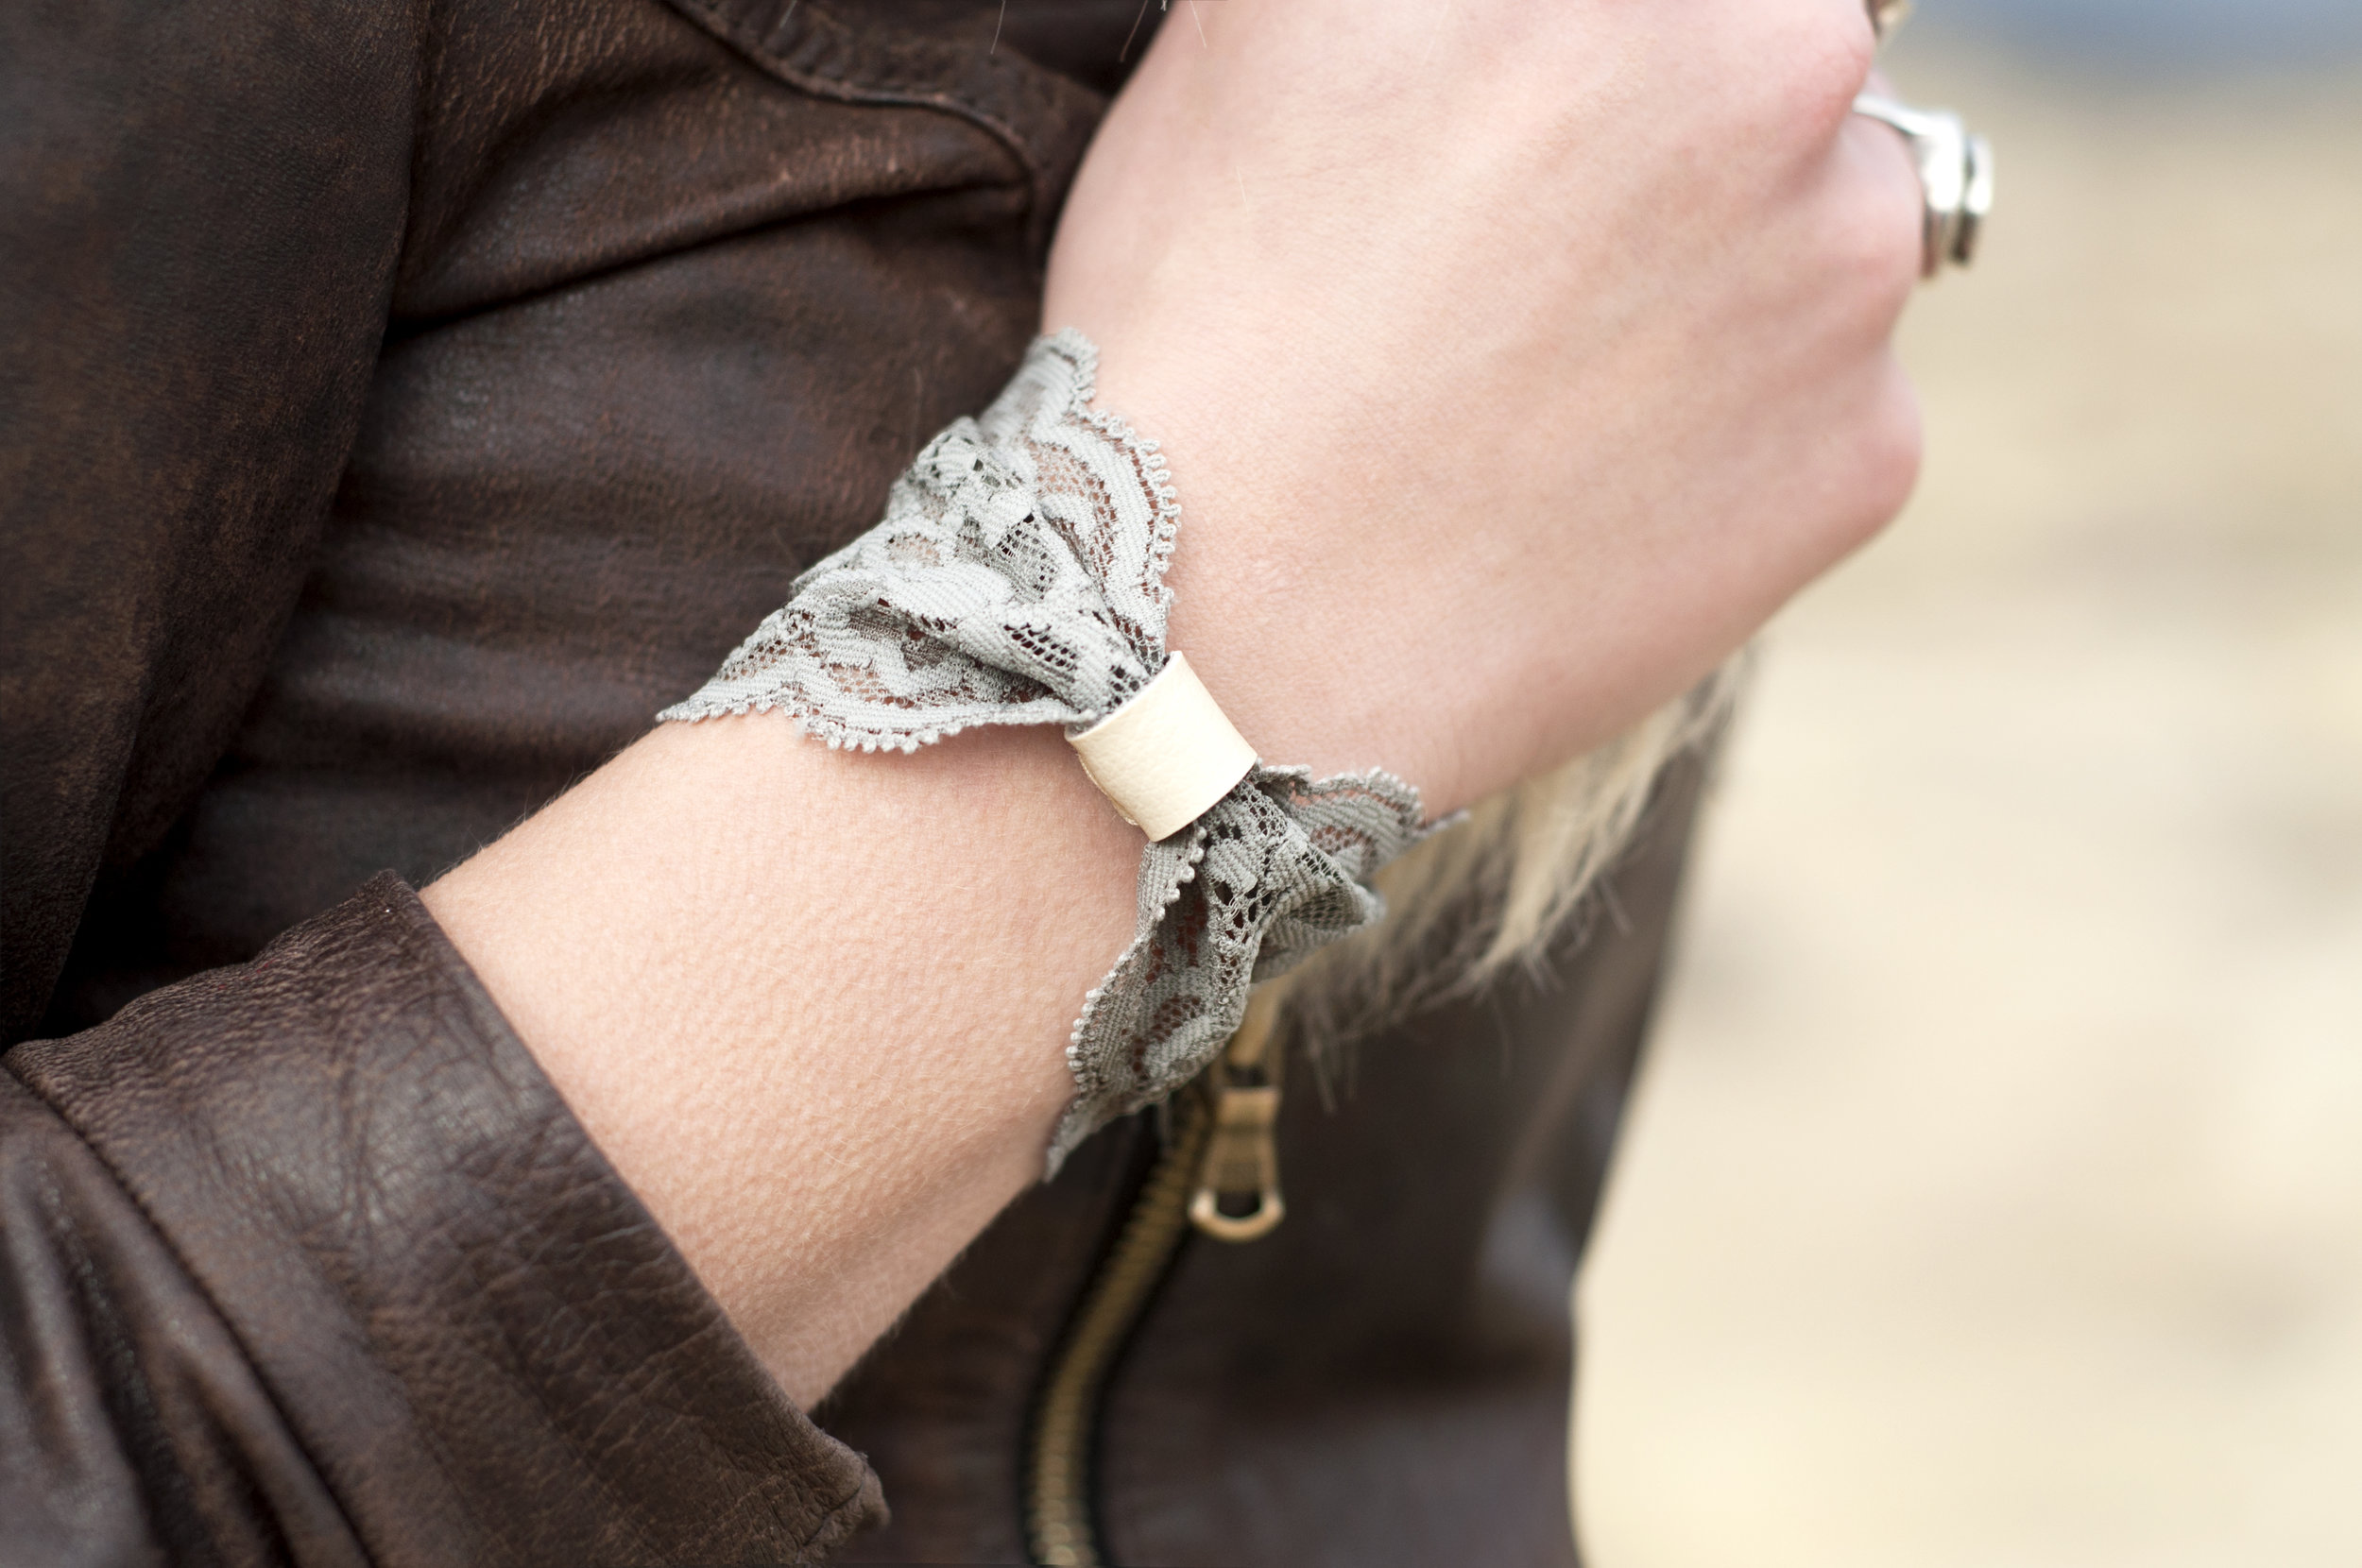 grey-lace-wrist-cuff-handmade-forgotten-cotton-stretch-wide-bracelet-tattoo-cover-up-covers.jpg